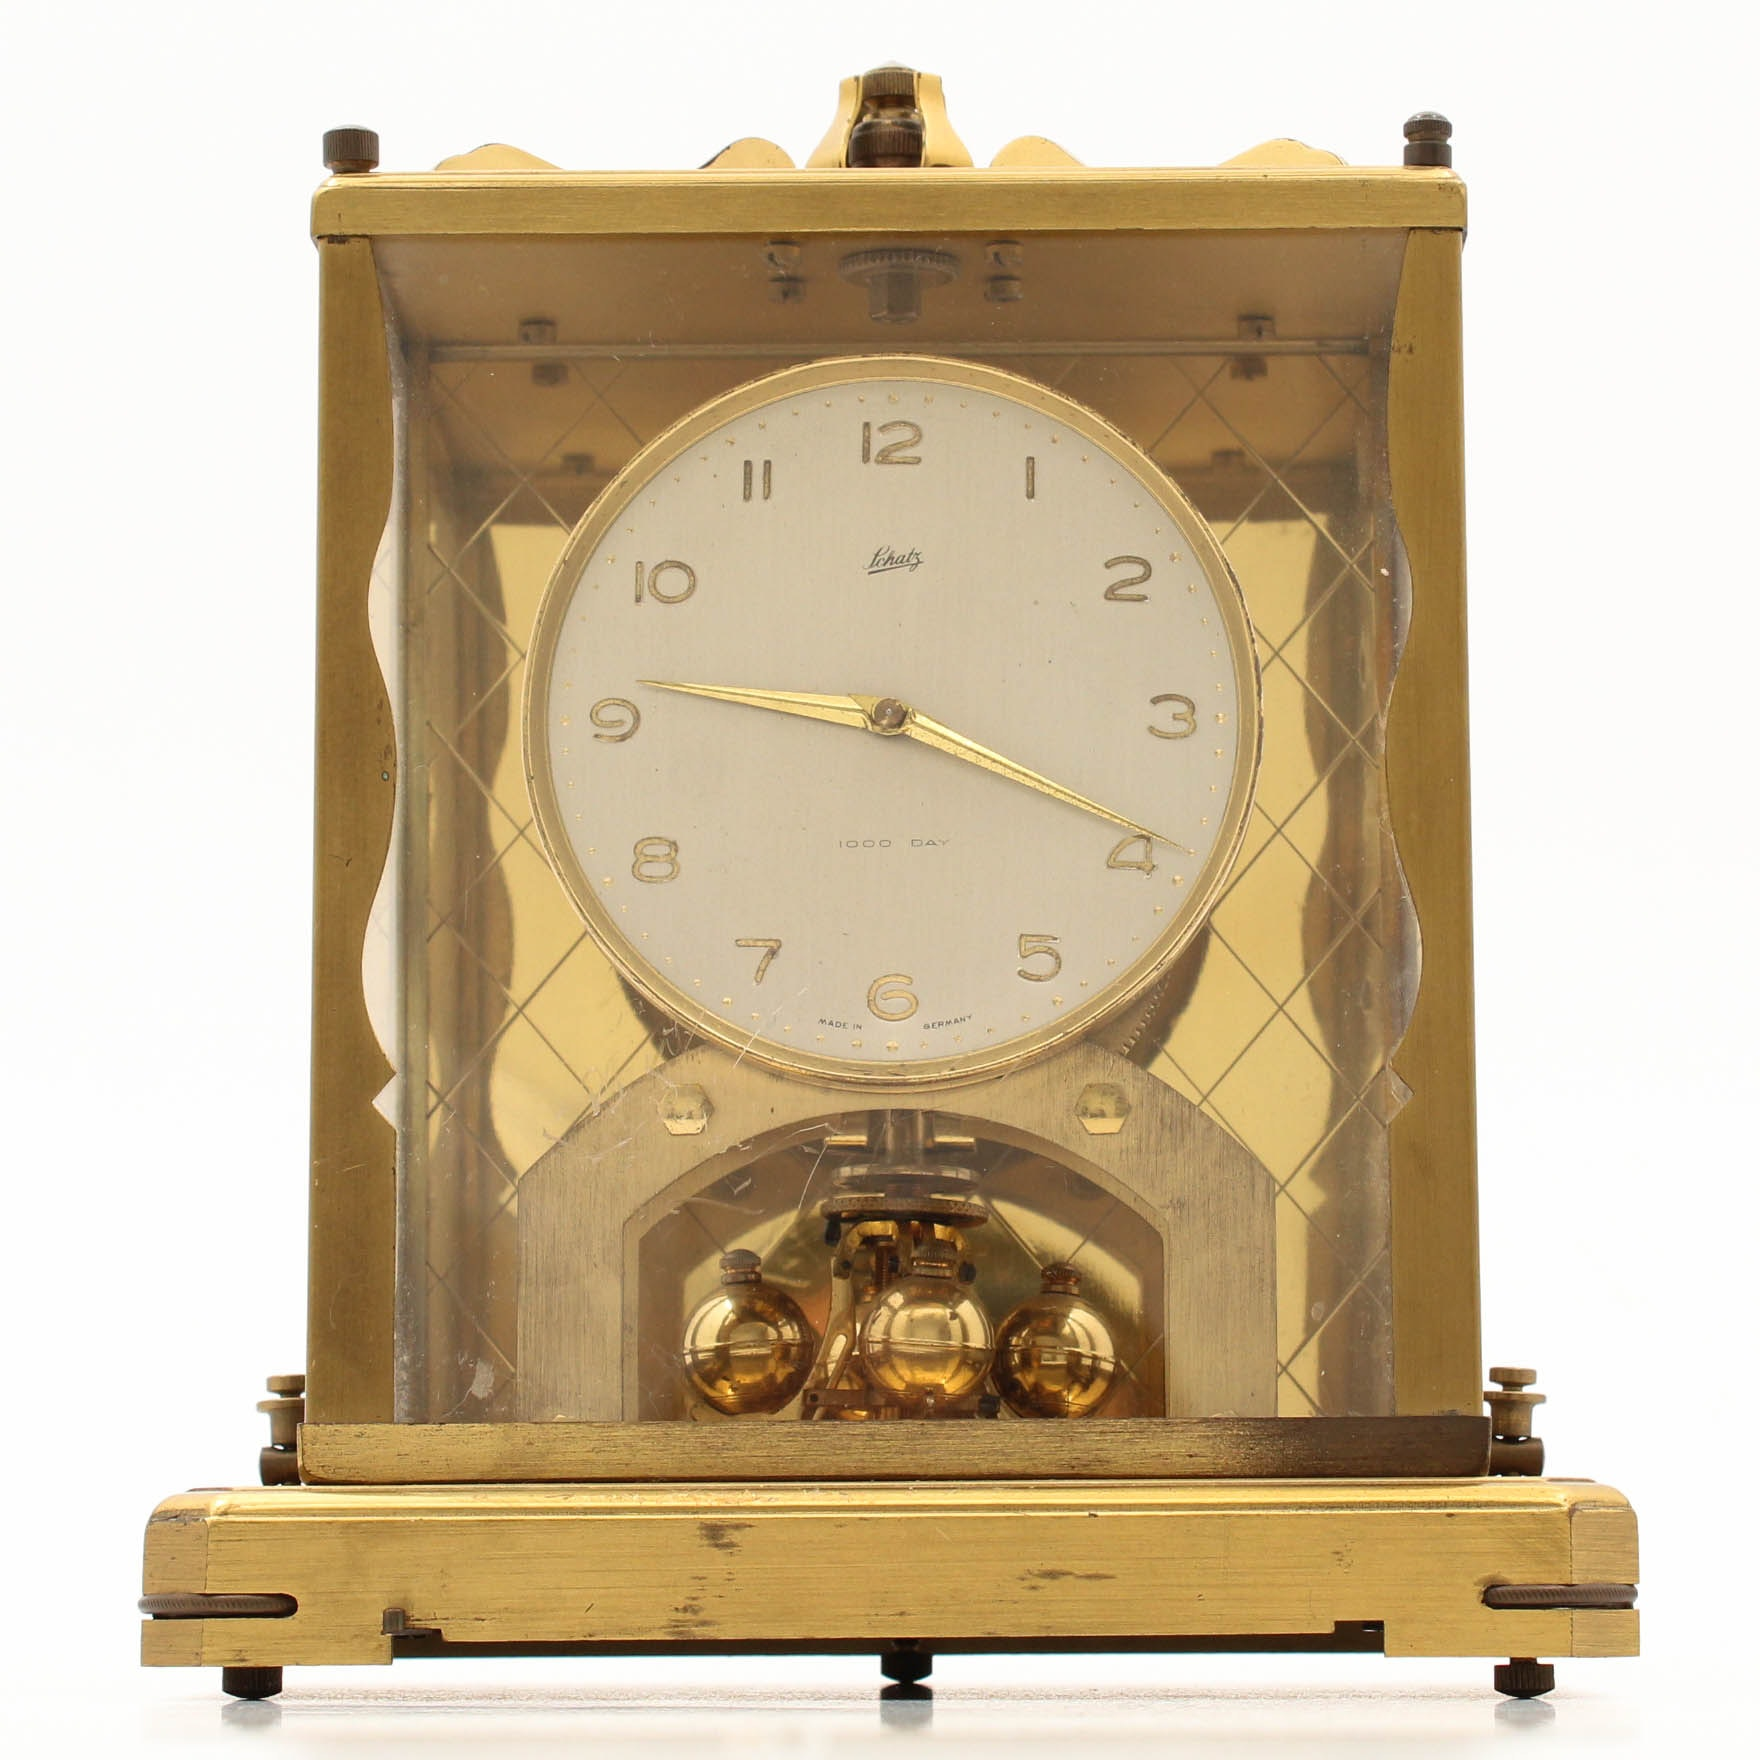 Schatz 1000 Day Brass Mantel Clock